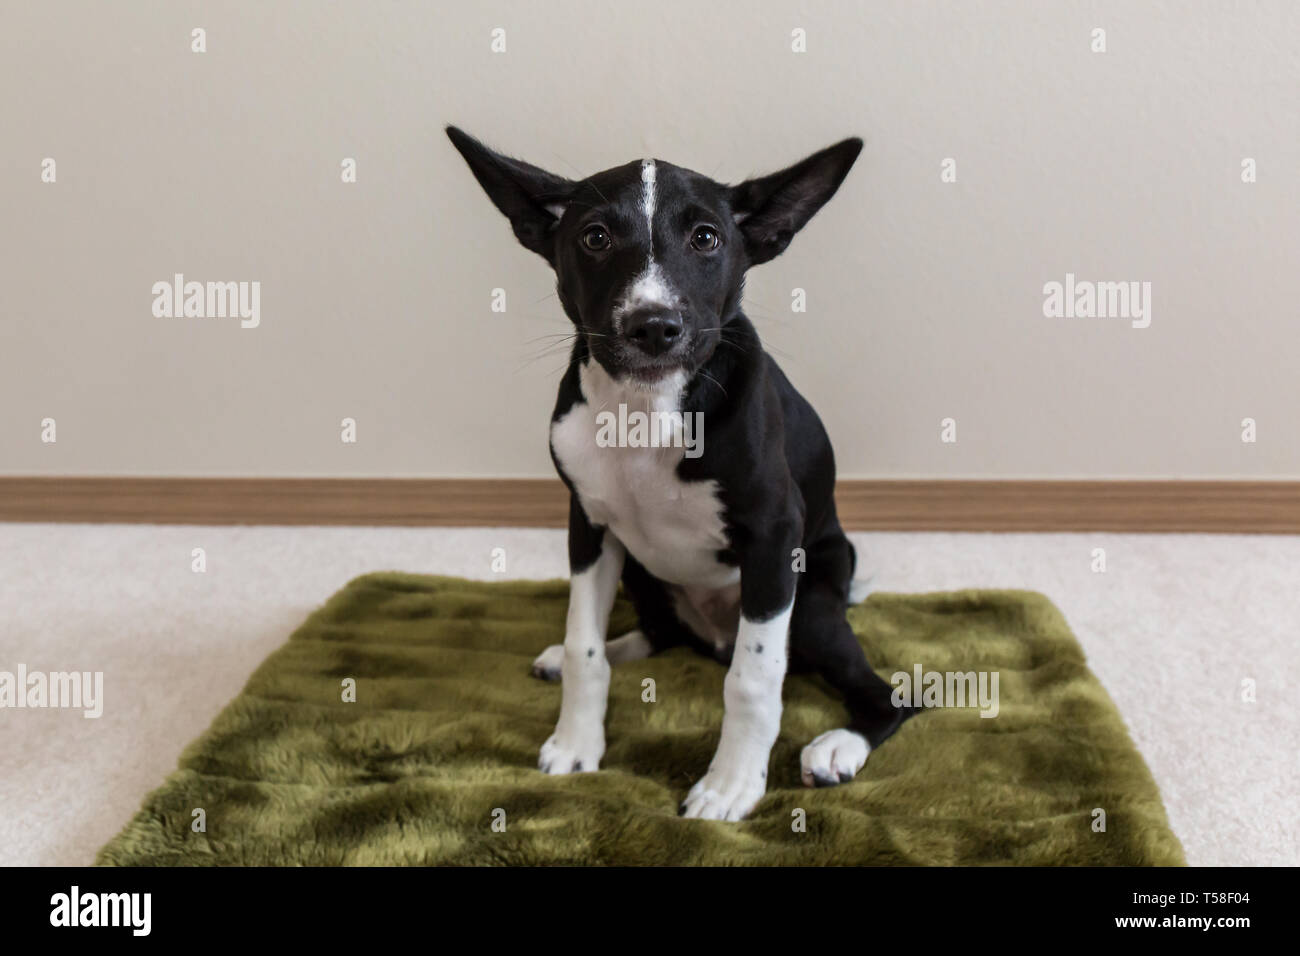 Alert Puppy Stock Photos & Alert Puppy Stock Images - Alamy